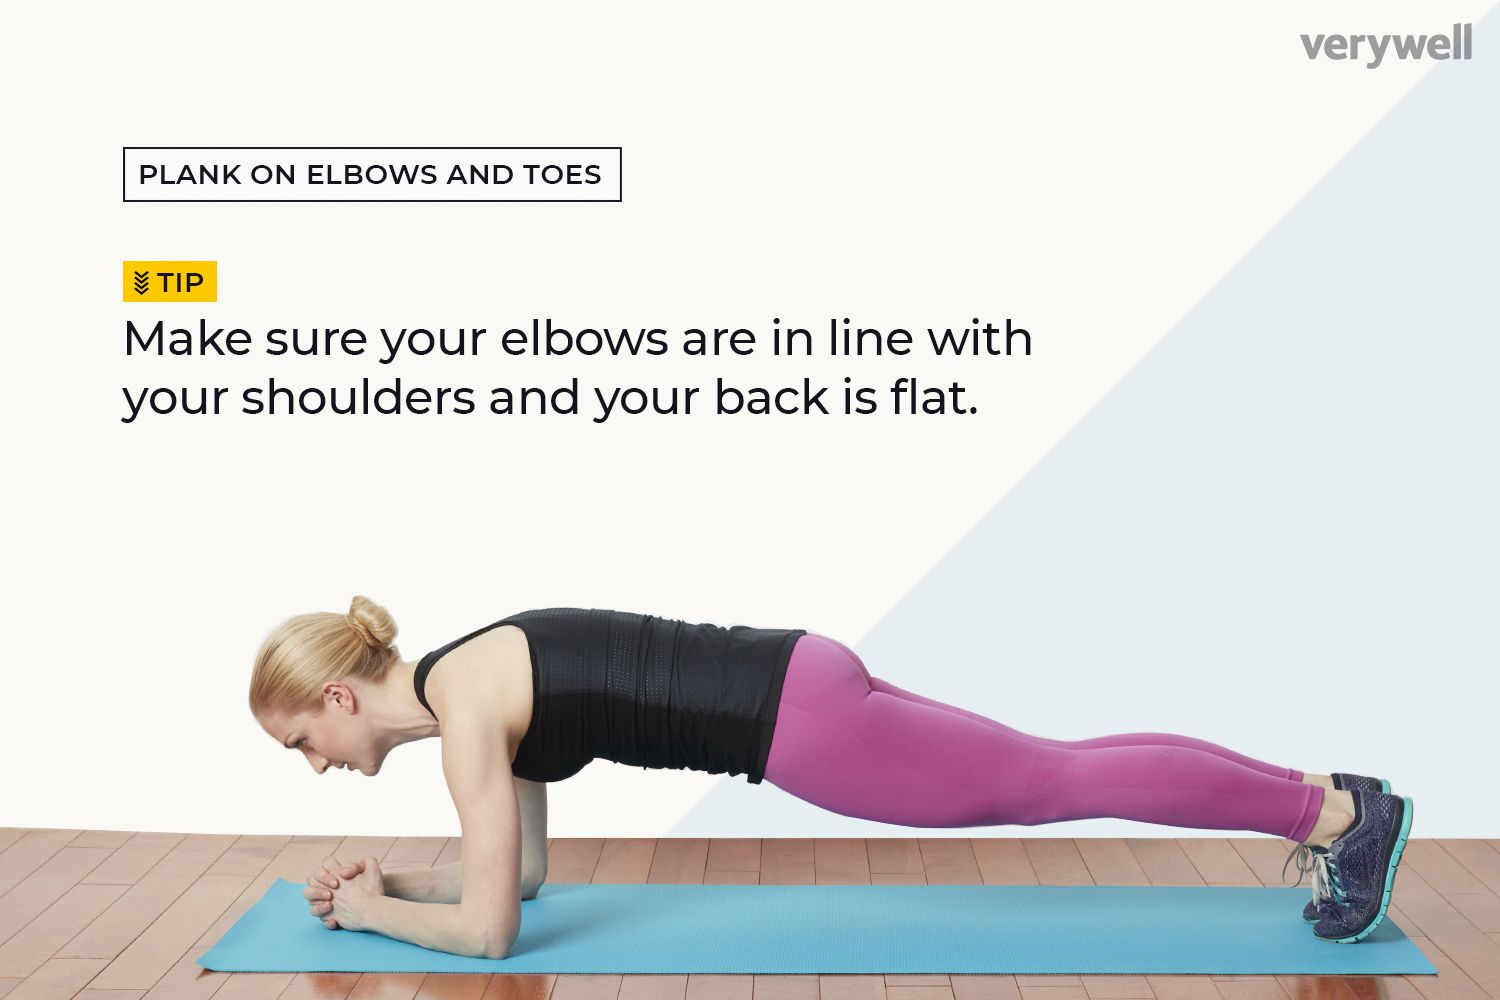 Plank on Elbows and Toes